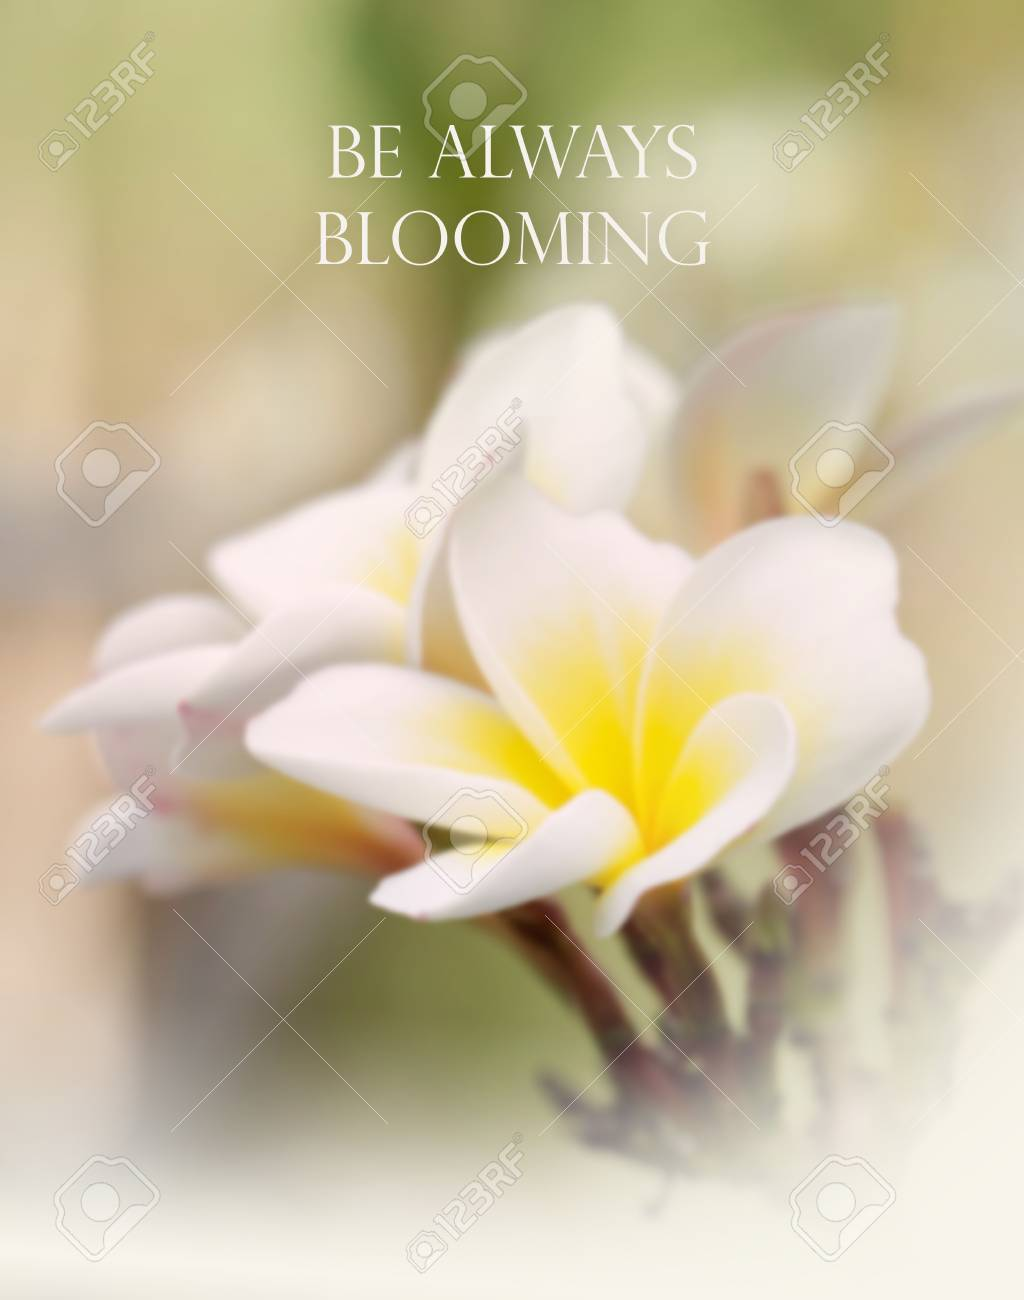 inspirational and motivation quote on blurred flower background